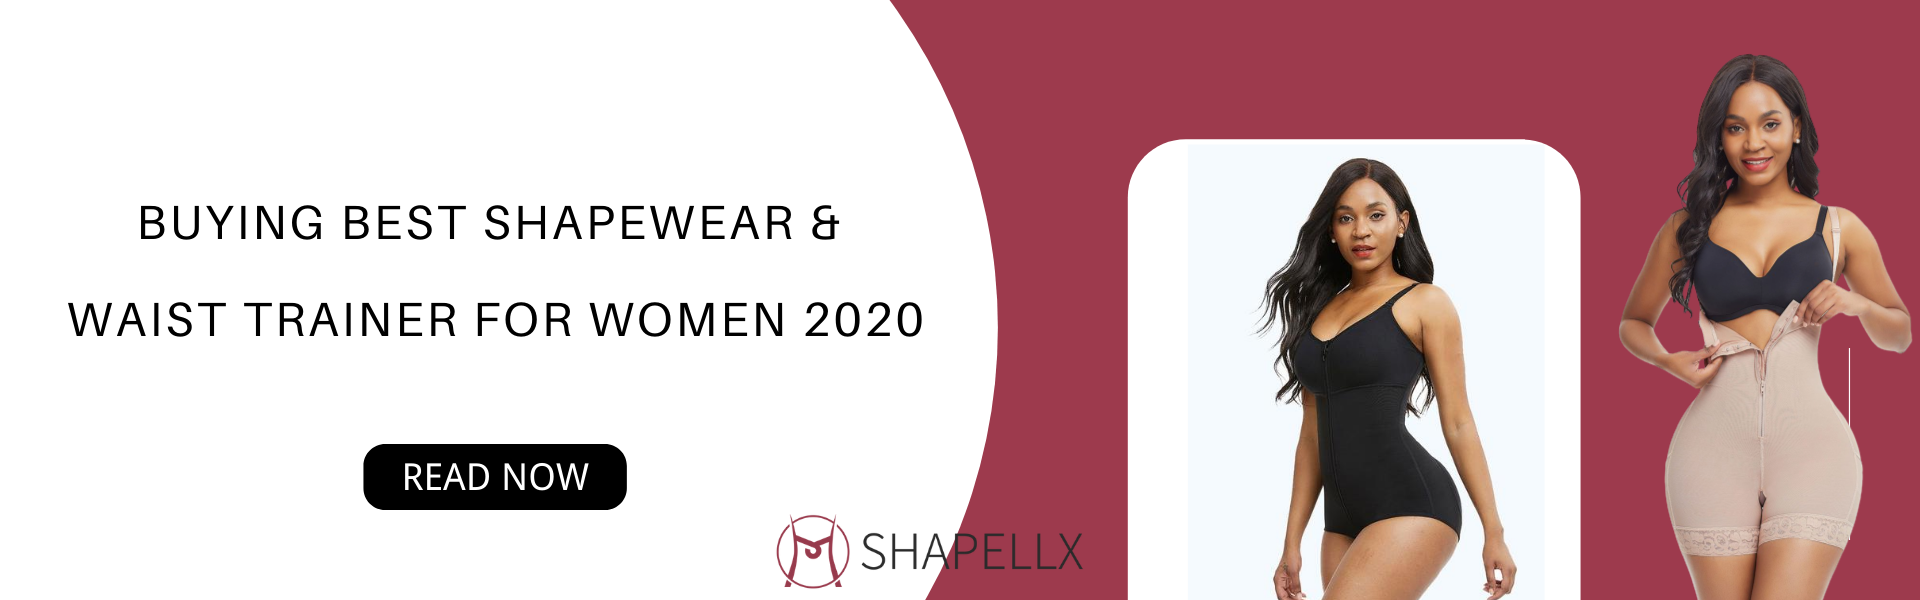 Buying Shapewear & Waist Trainer for Women 2020